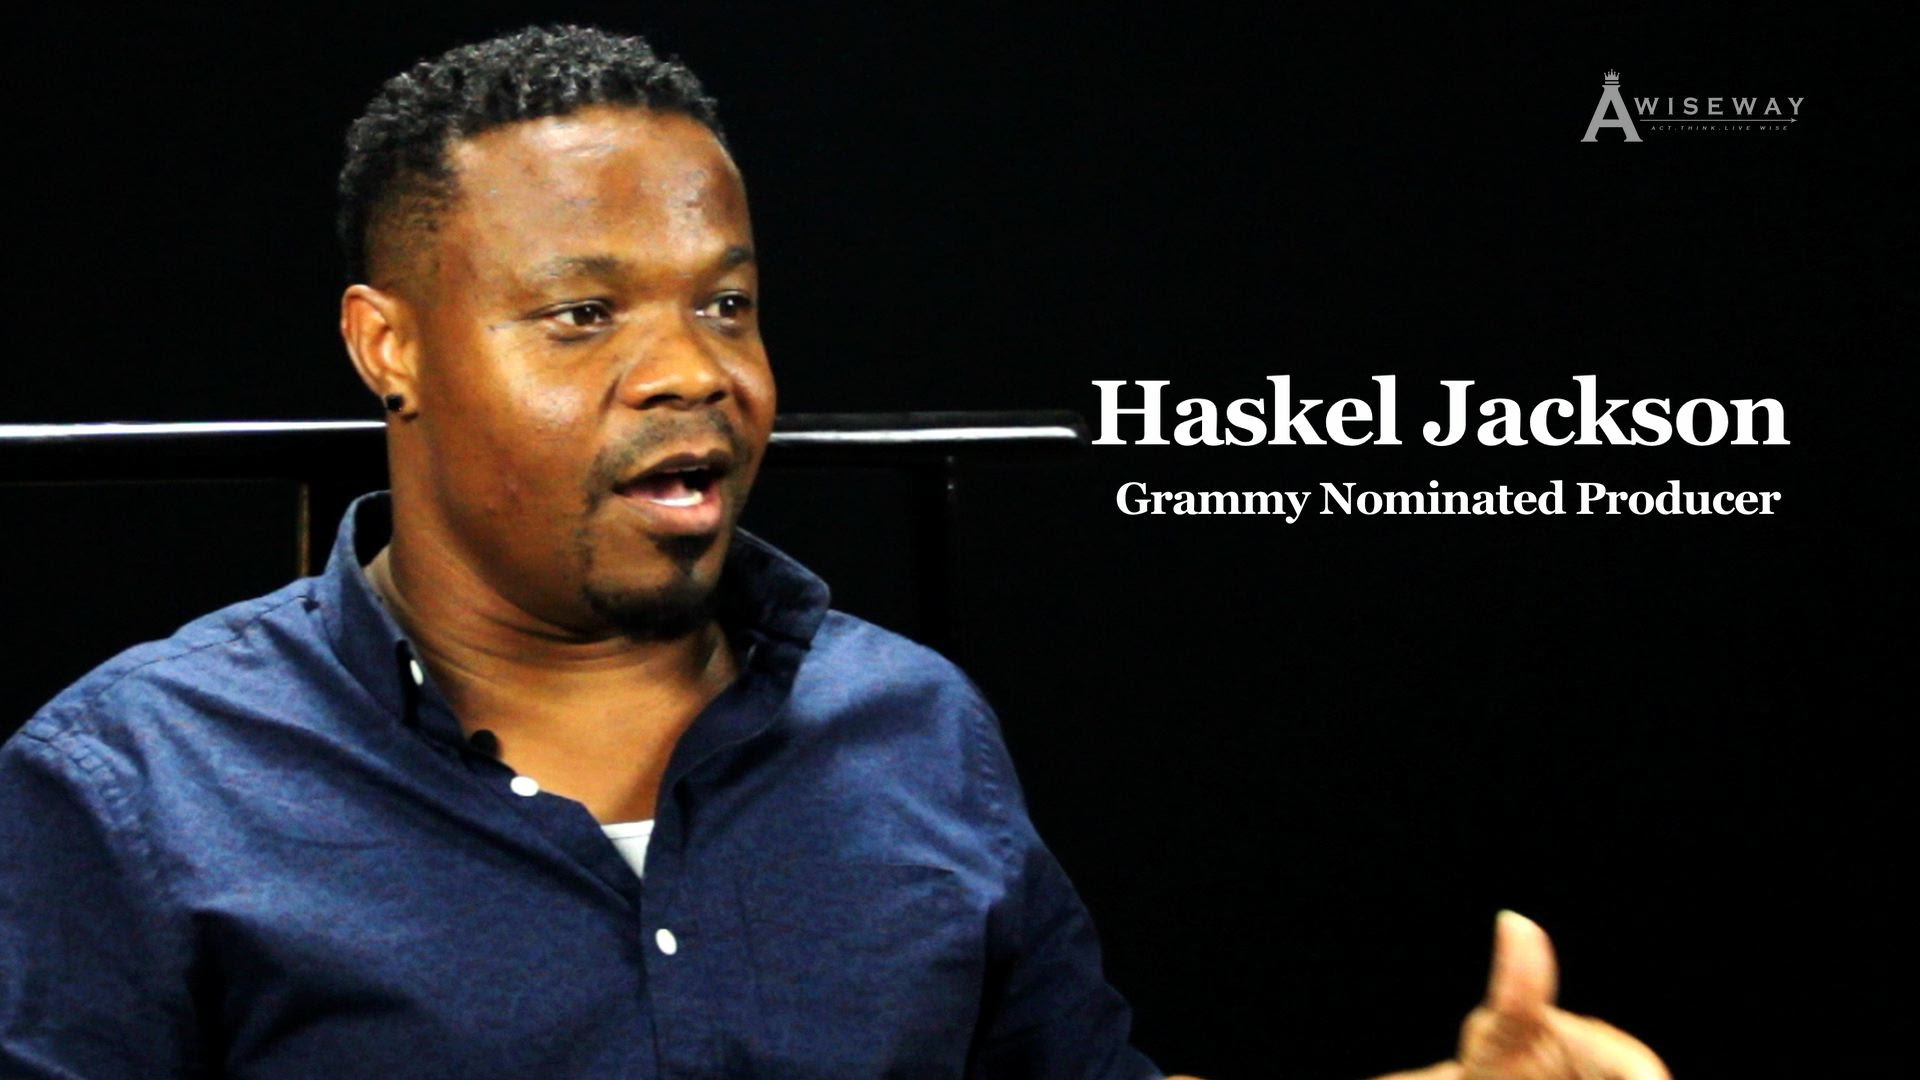 Grammy Nominated Producer Talks About What He Overcame to be Successful